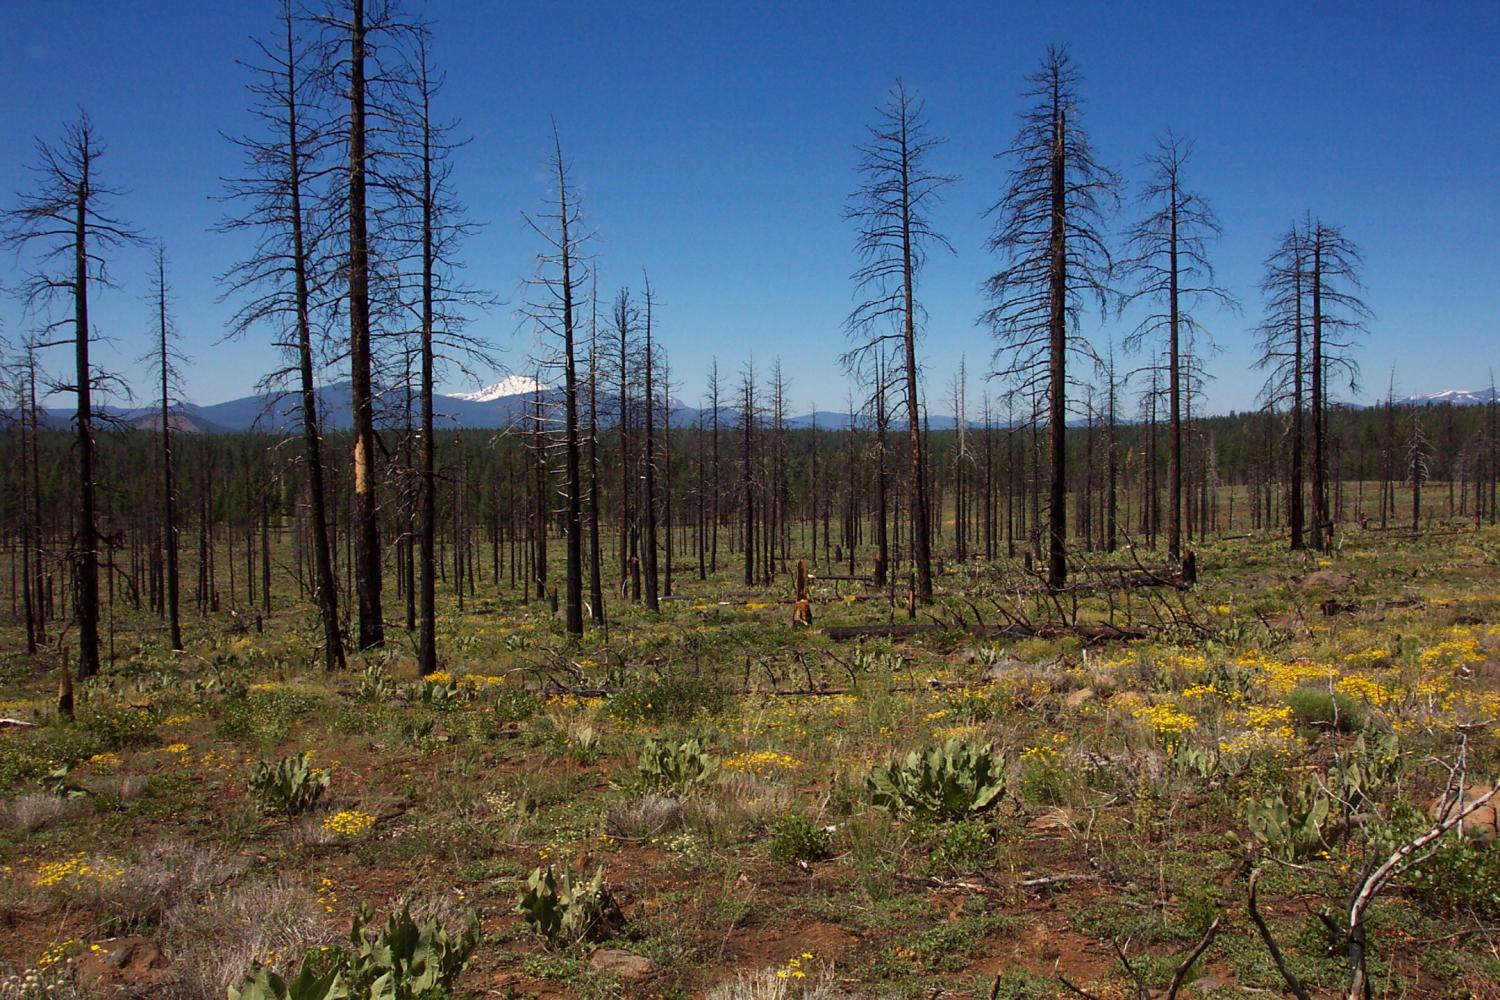 Vegetation resilient to salvage logging after severe wildfire